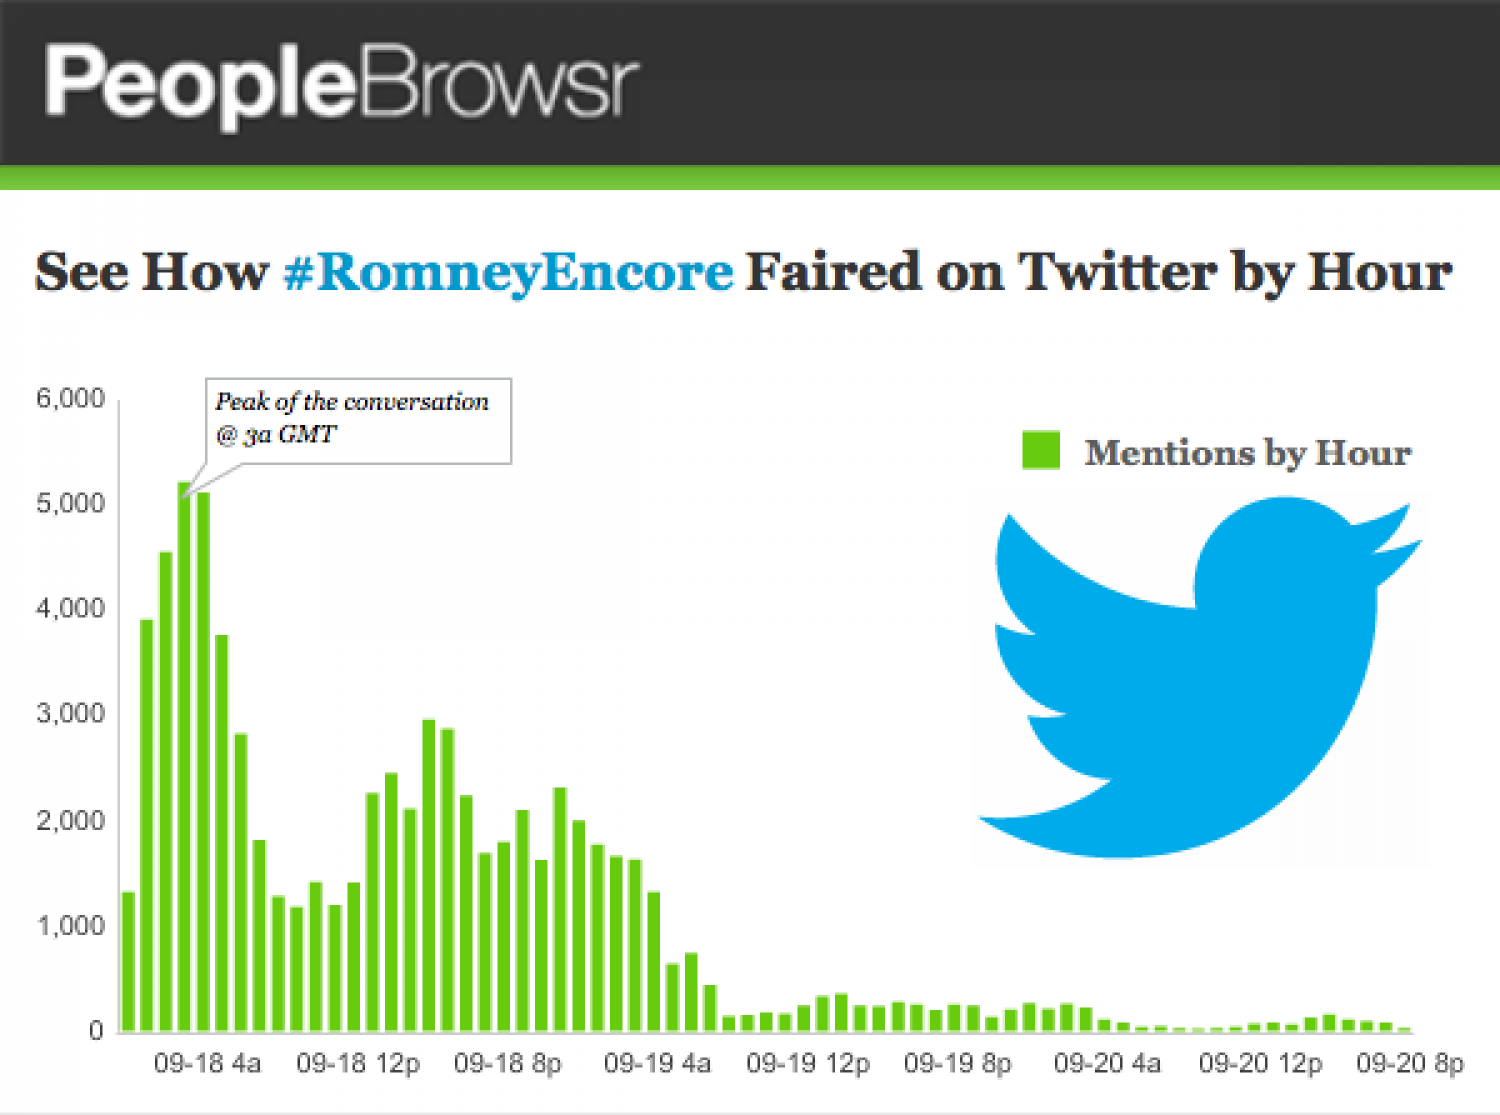 #RomneyEncore Mention Trends by Hour Infographic